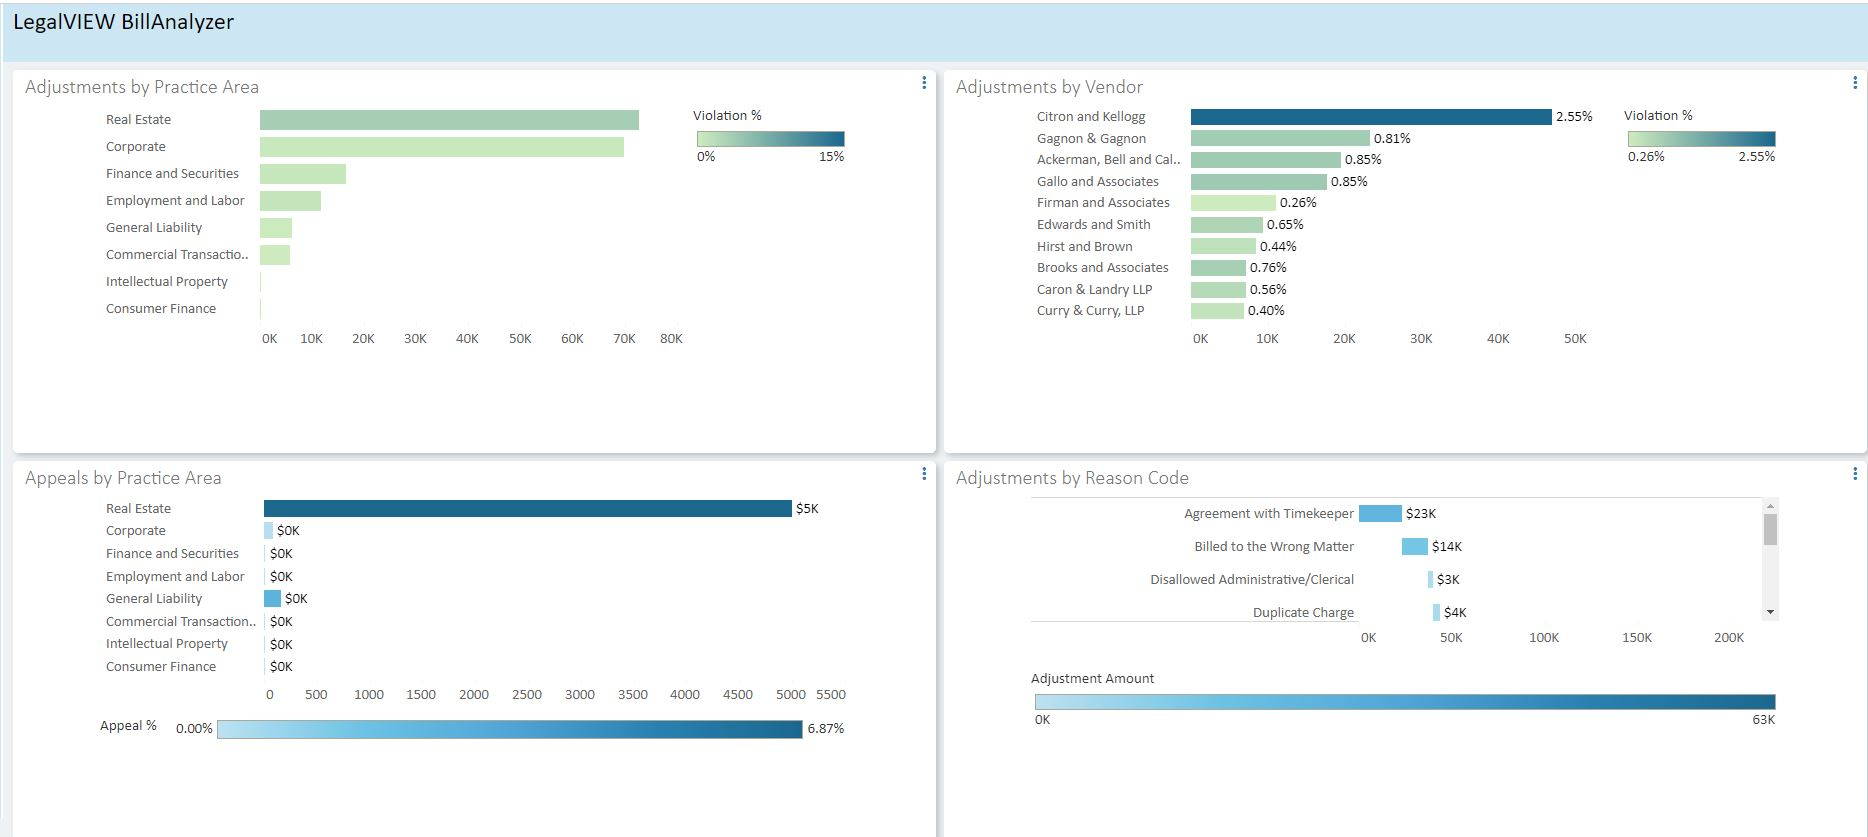 LegalVIEW dashboards